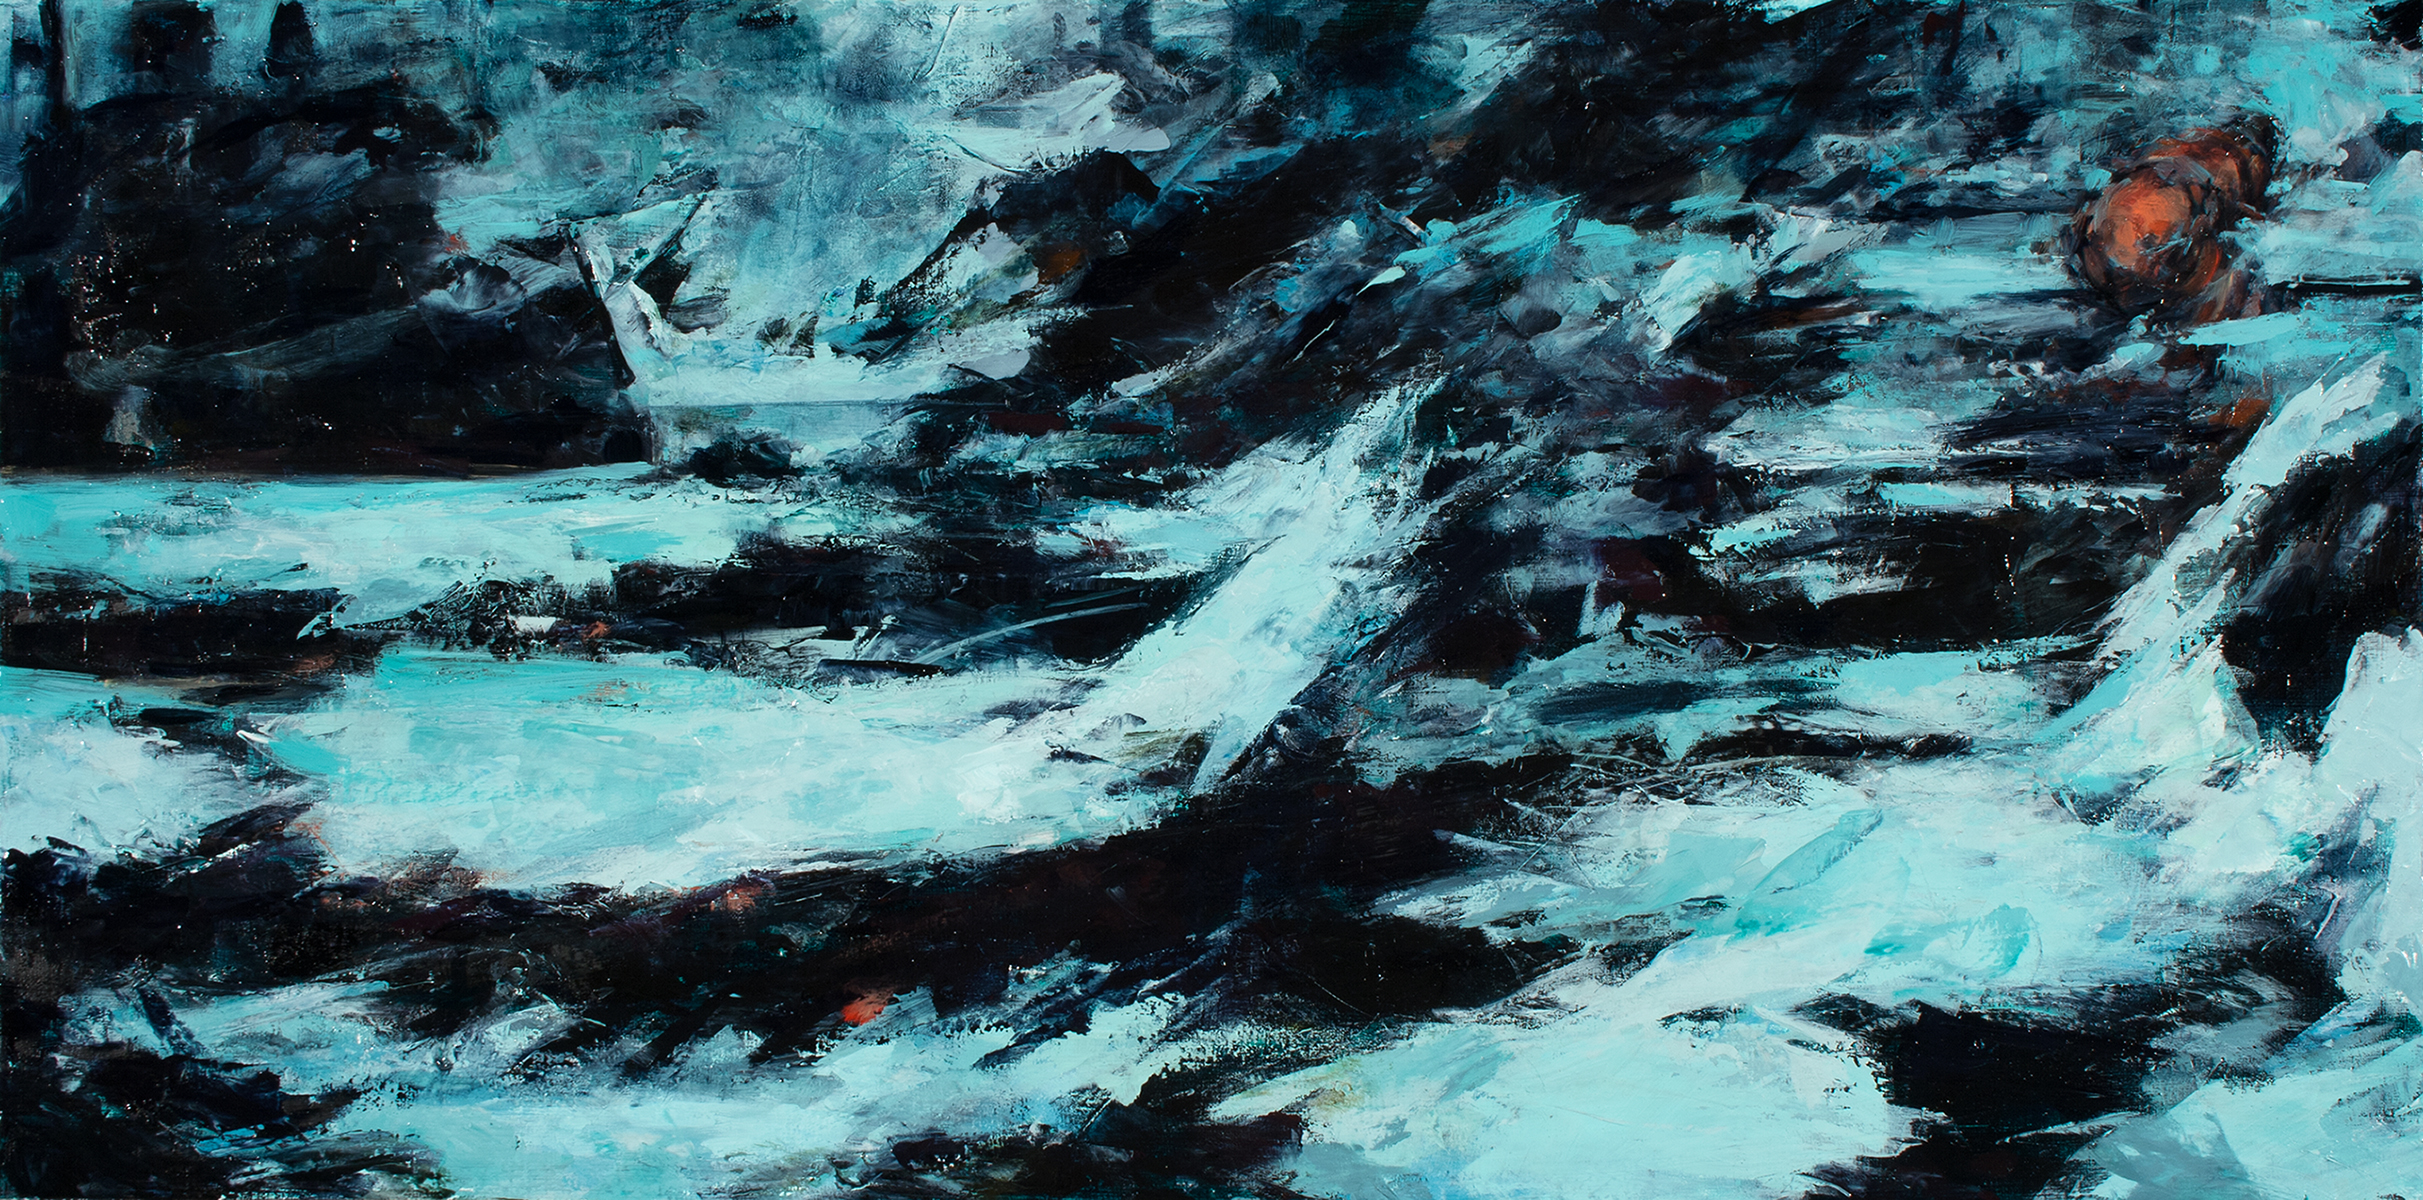 """'Arctic Hold', oil on board, 12"""" x 24"""" x 2"""", 2016"""